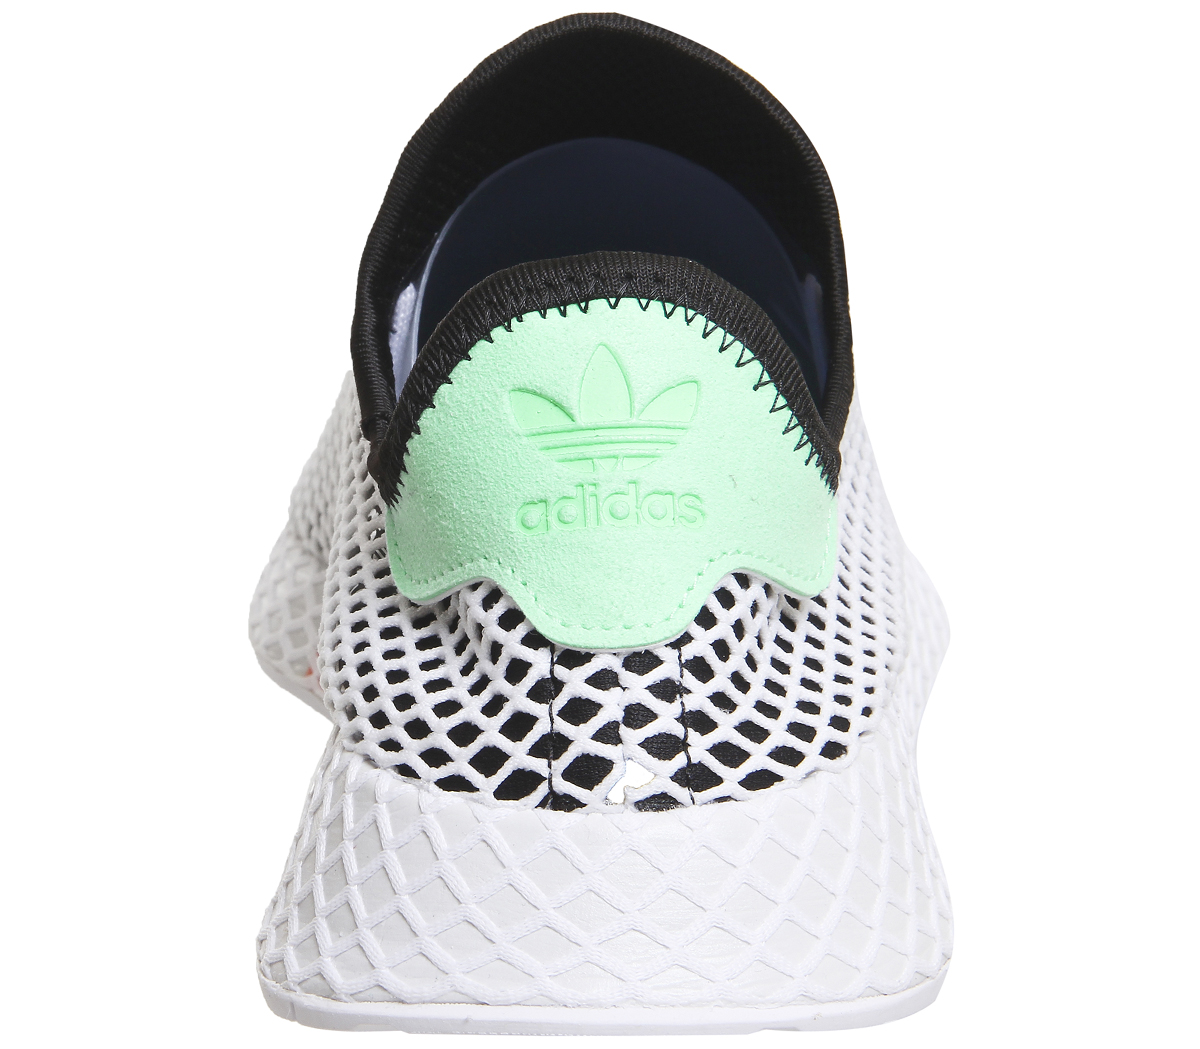 6aeb6ae654b Sentinel Mens Adidas Deerupt Trainers CORE BLACK EASY GREEN WHITE Trainers  Shoes